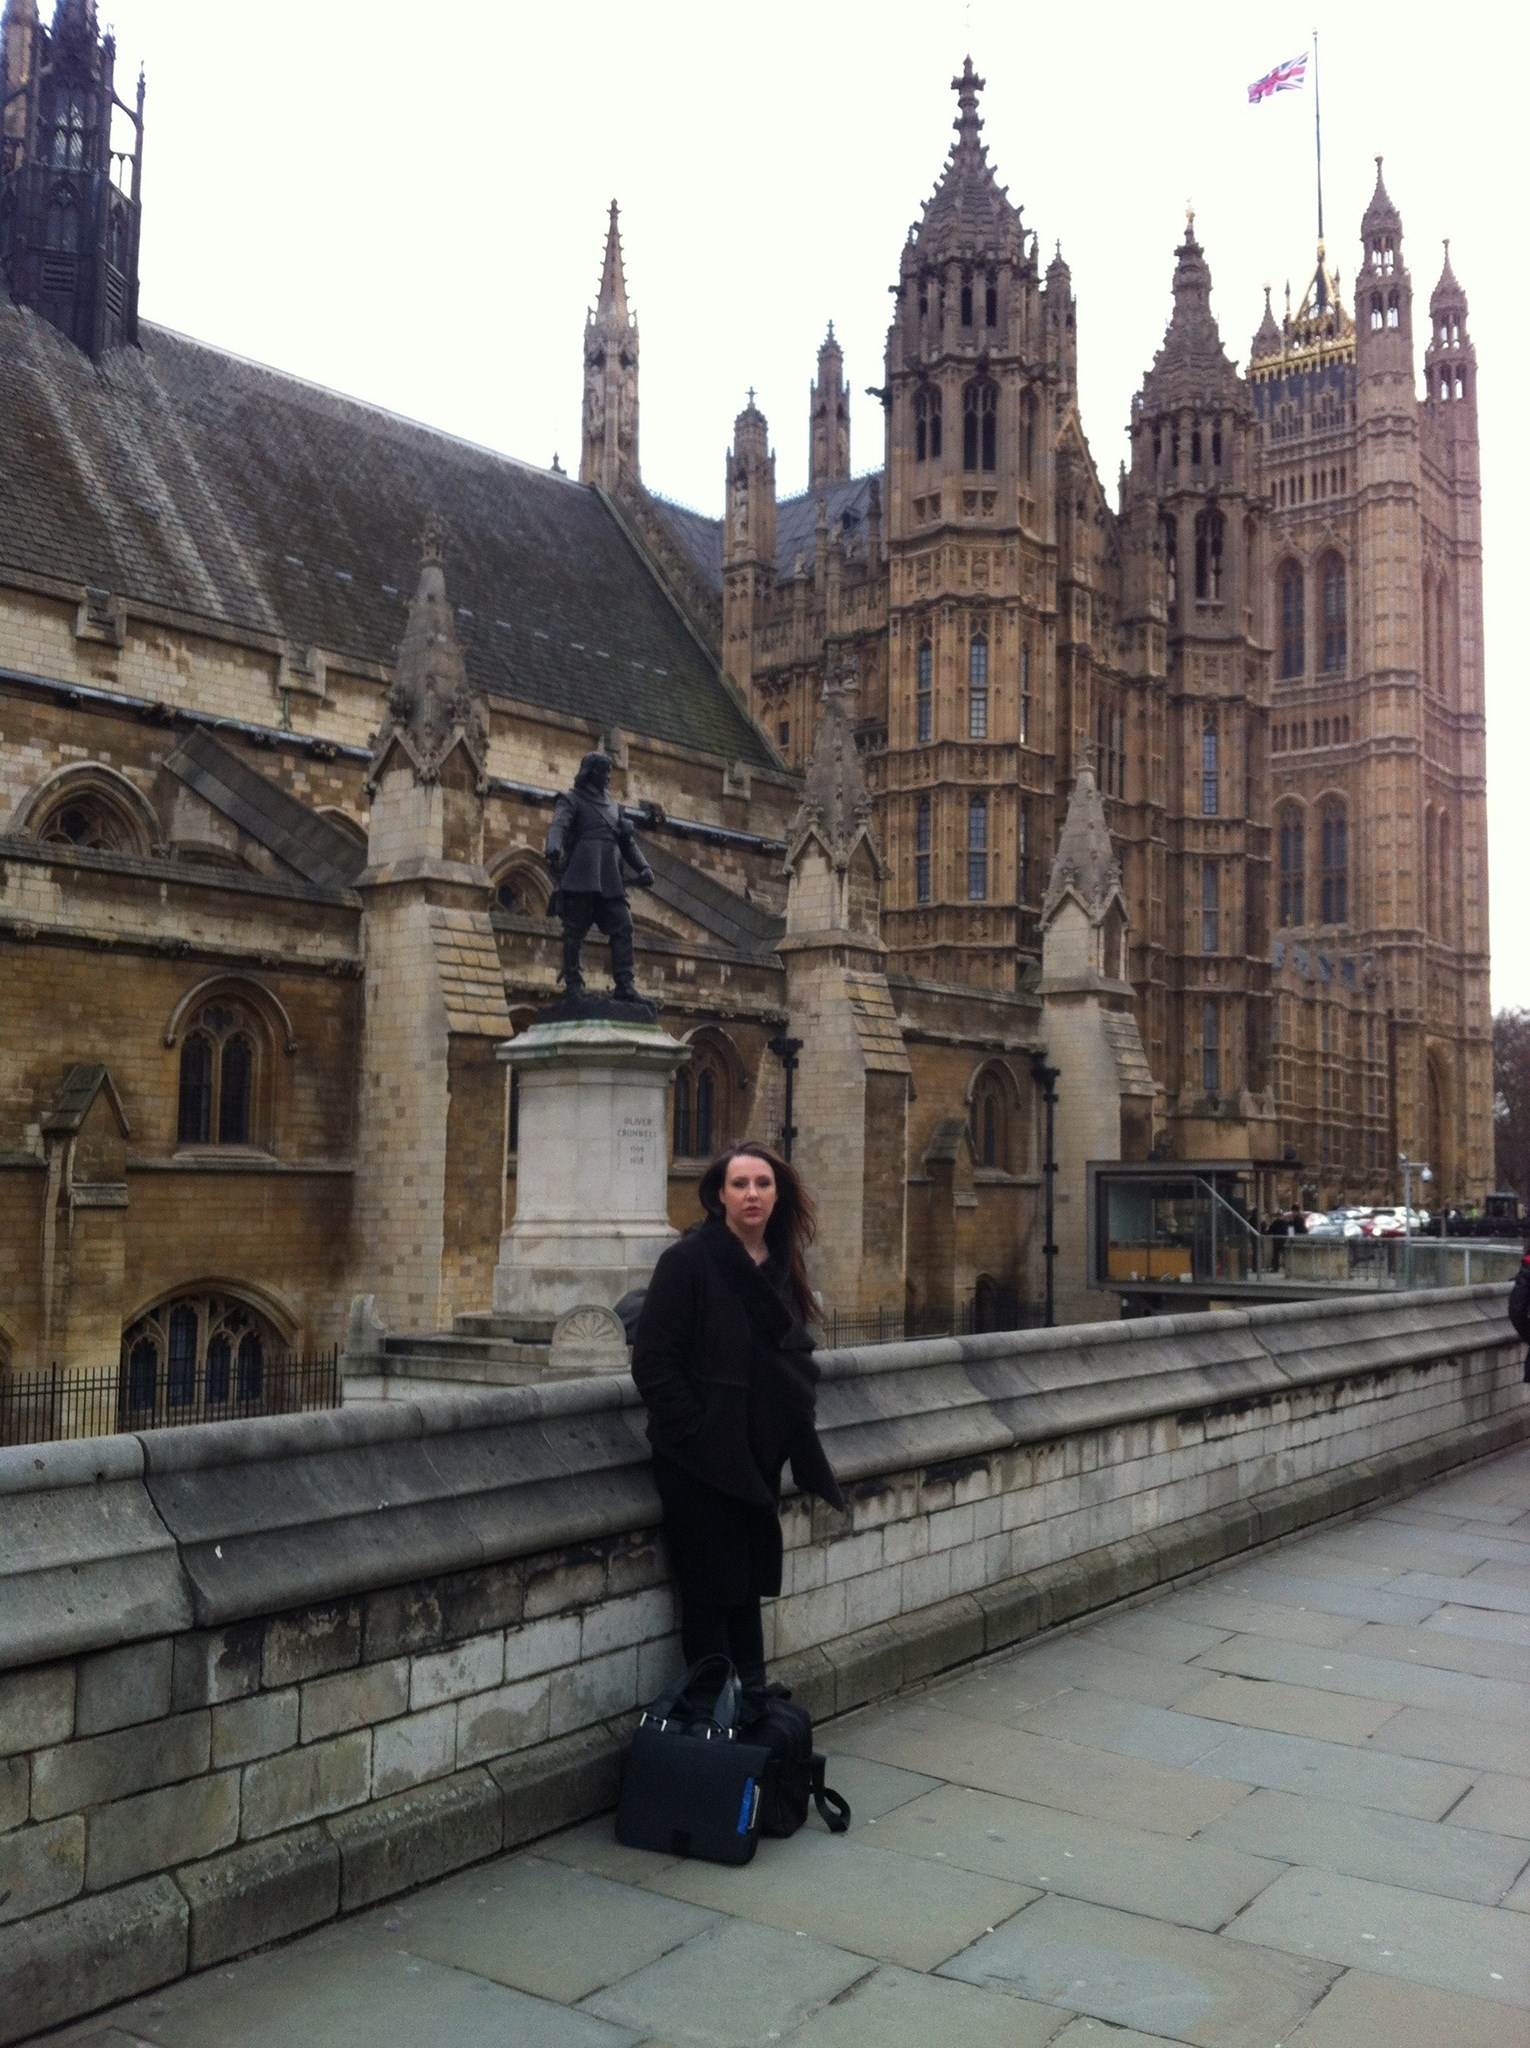 At Houses of Parliament